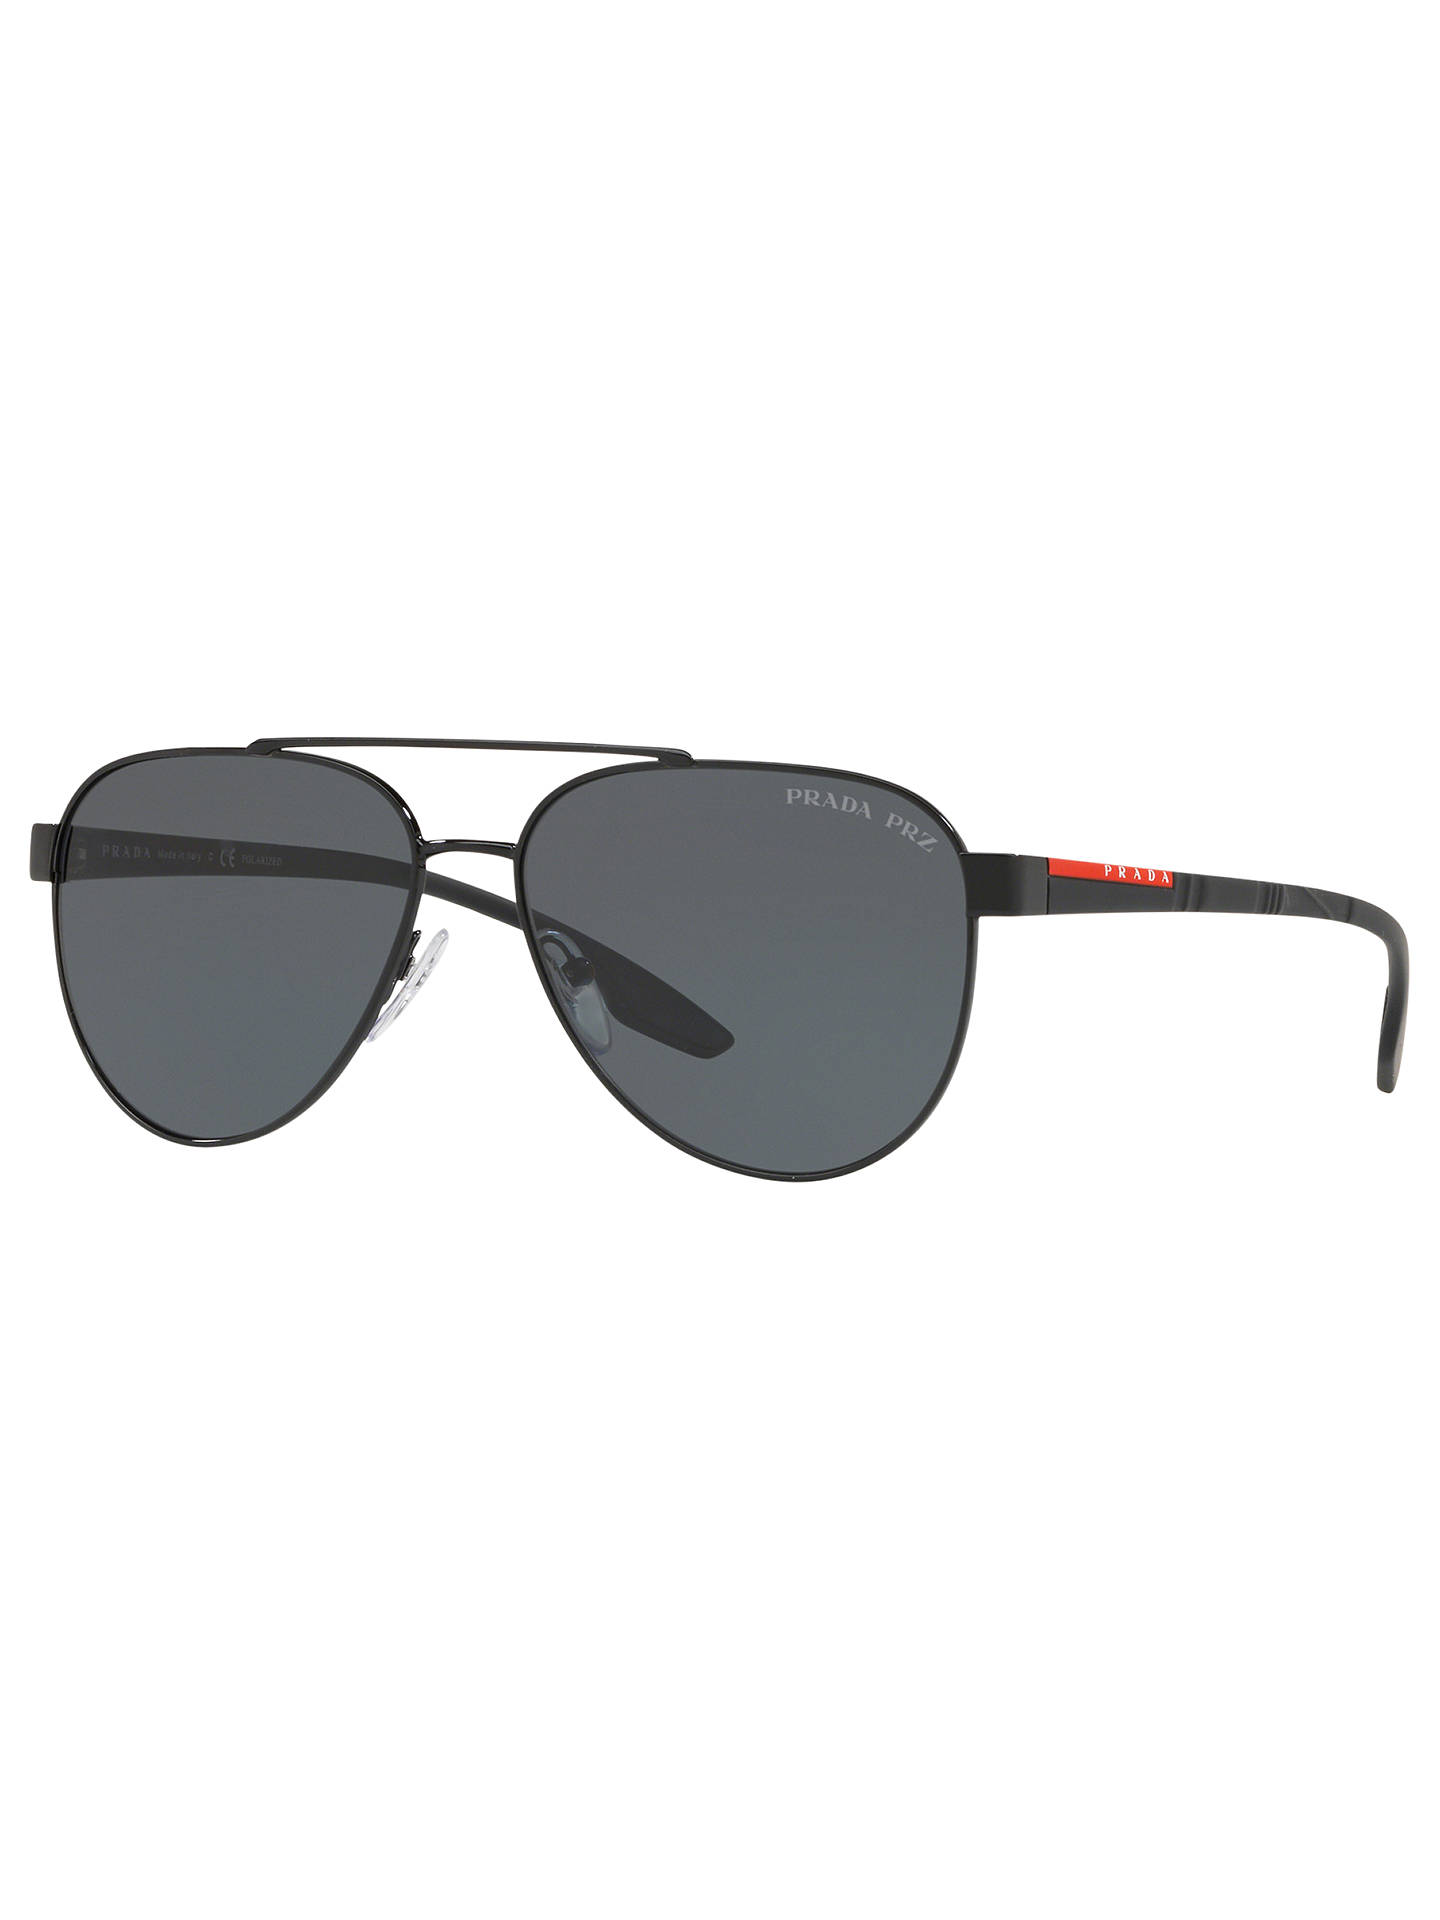 ea509b96869 Prada Linea Rossa PS 54TS Men s Polarised Aviator Sunglasses at John ...